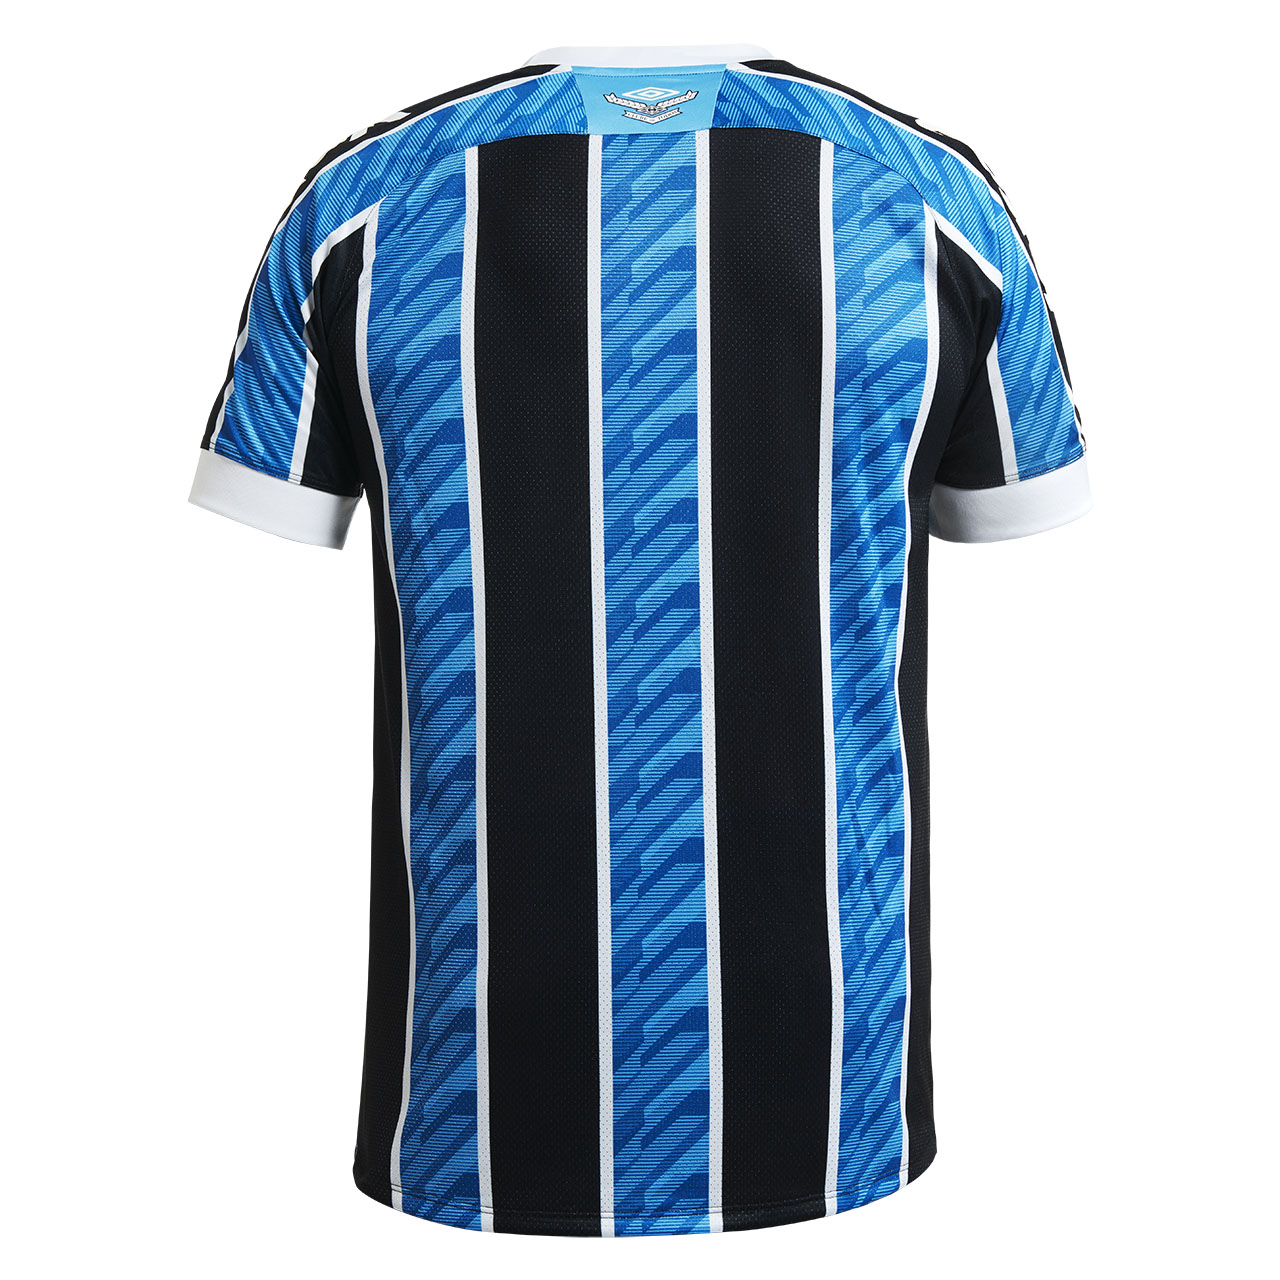 https://assets-mantosdofutebol.sfo2.digitaloceanspaces.com/wp-content/uploads/2020/03/Camisas-do-Gr%C3%AAmio-2020-2021-Umbro-kit-1.jpg